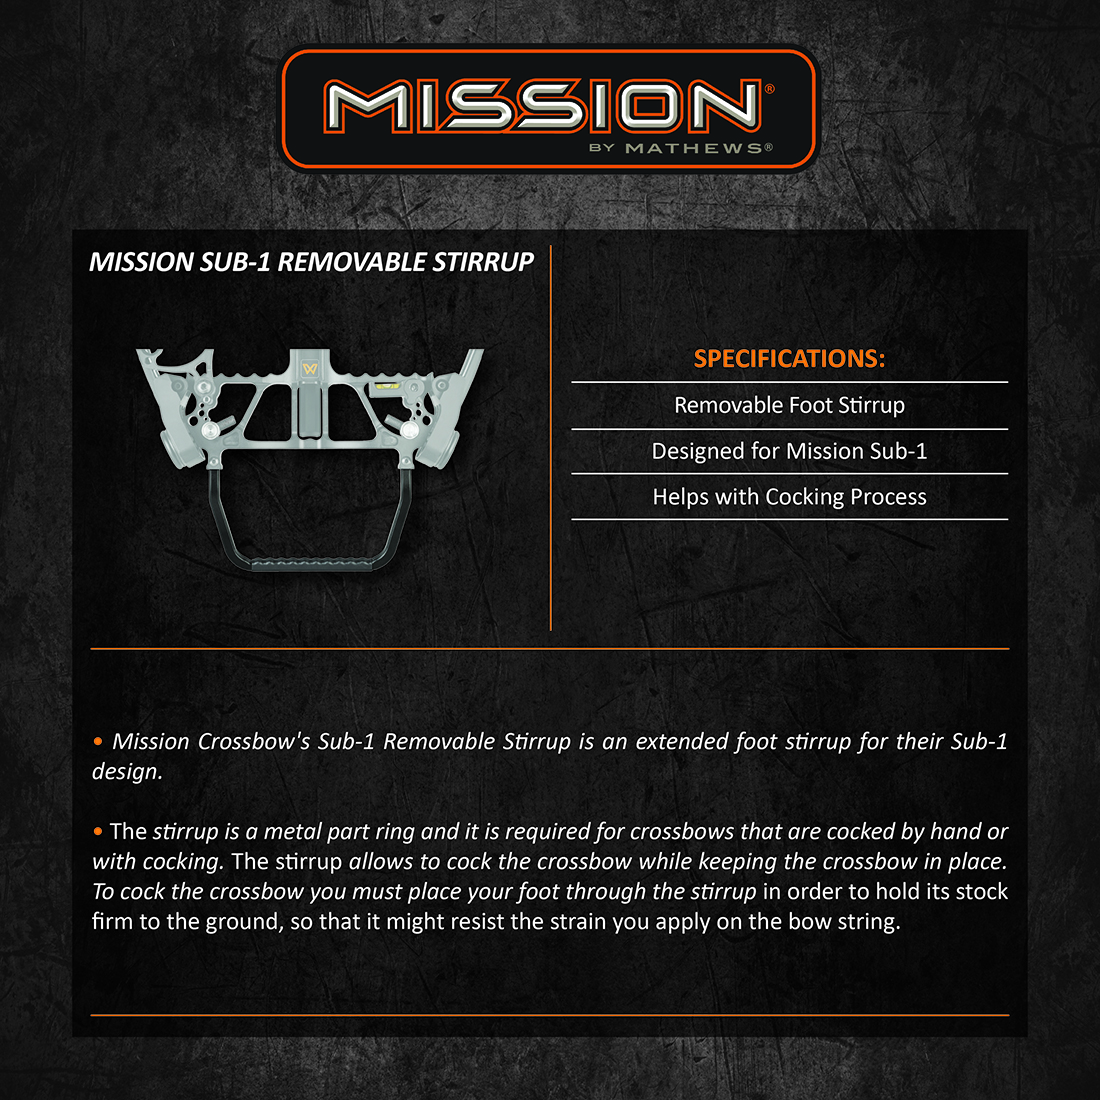 Mission_Sub1_Removable_Stirrup_Product_Description